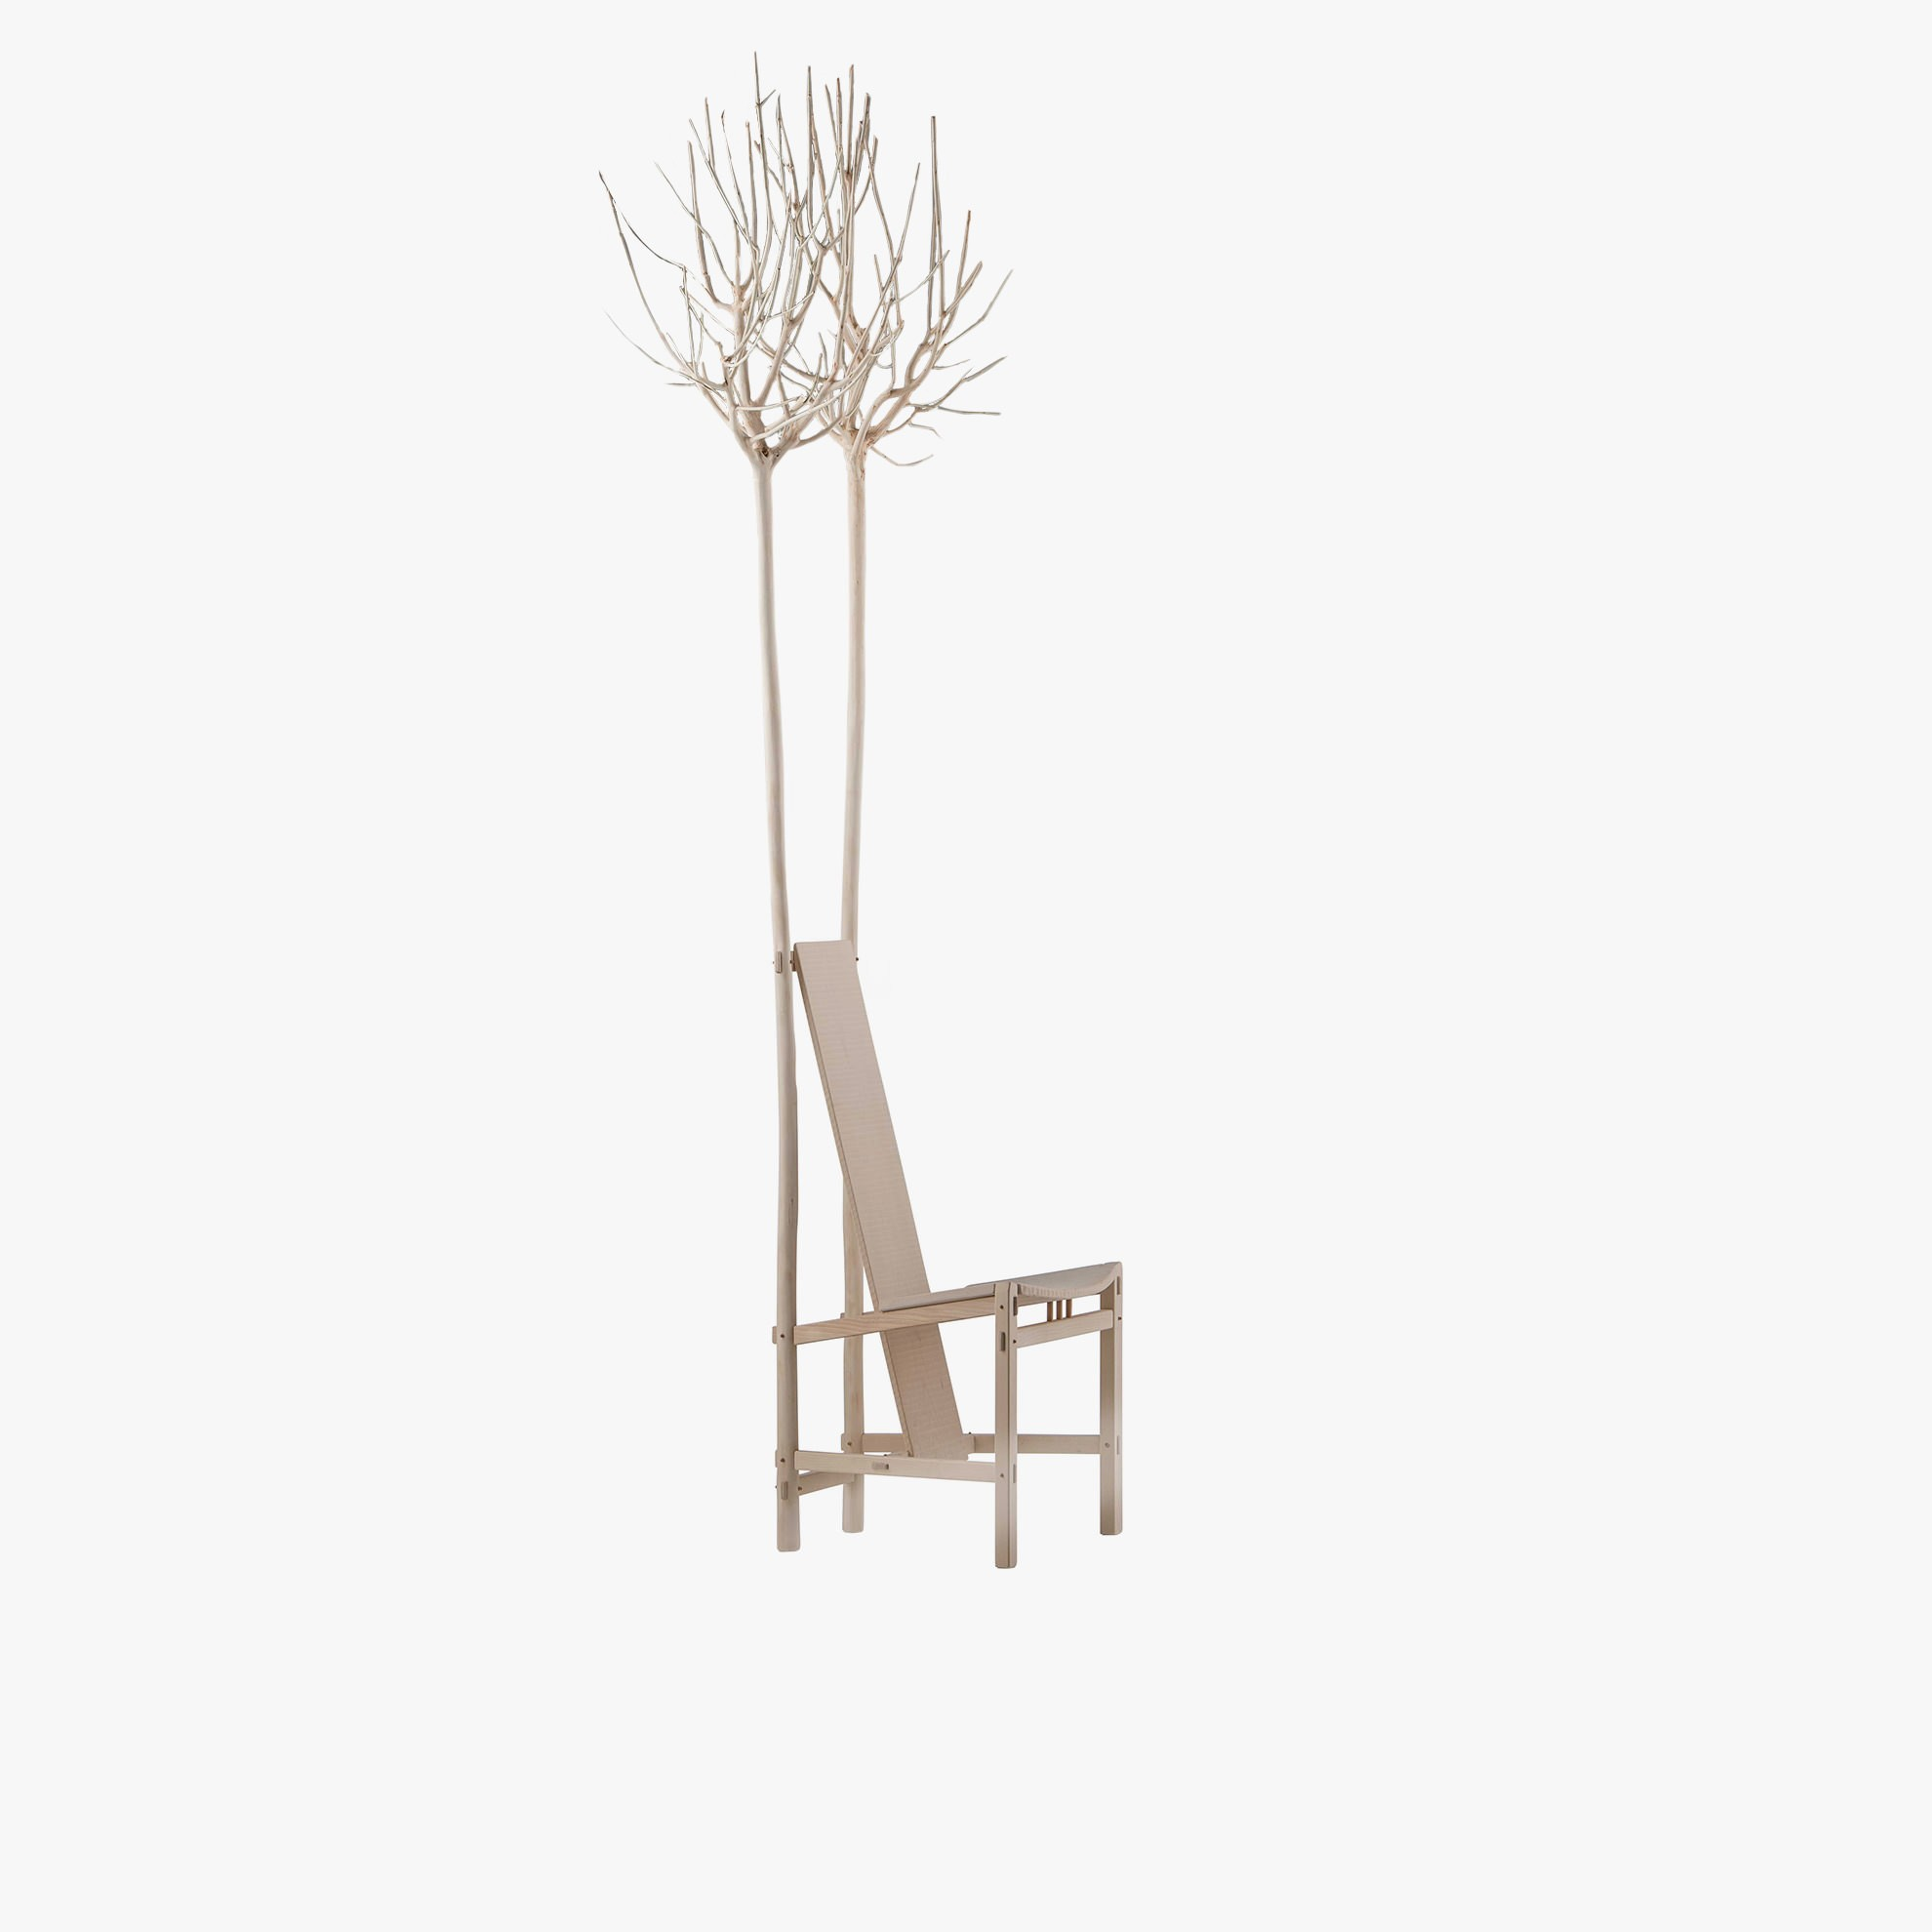 Fiorita Armchair - <p>Fiorita is a seat in solid wood, made using the interlocking technique. It is distinguished by two privet trees that form part of the structure. All the surfaces are sanded. The wood used for this item is maple, a wood from the temperate European zone traditionally used for musical instruments; it has a subtle, fine grain, very distinctive, and characteristic white colour. This distinctive colour, visible as we work the wood, tends to turn yellow rapidly unless treated appropriately to preserve the original whiteness. With Fiorita, we can feel the beauty of nature even inside the home. Customised and made with European cherry, Slavonian oak, maple.</p>    Matter of Stuff